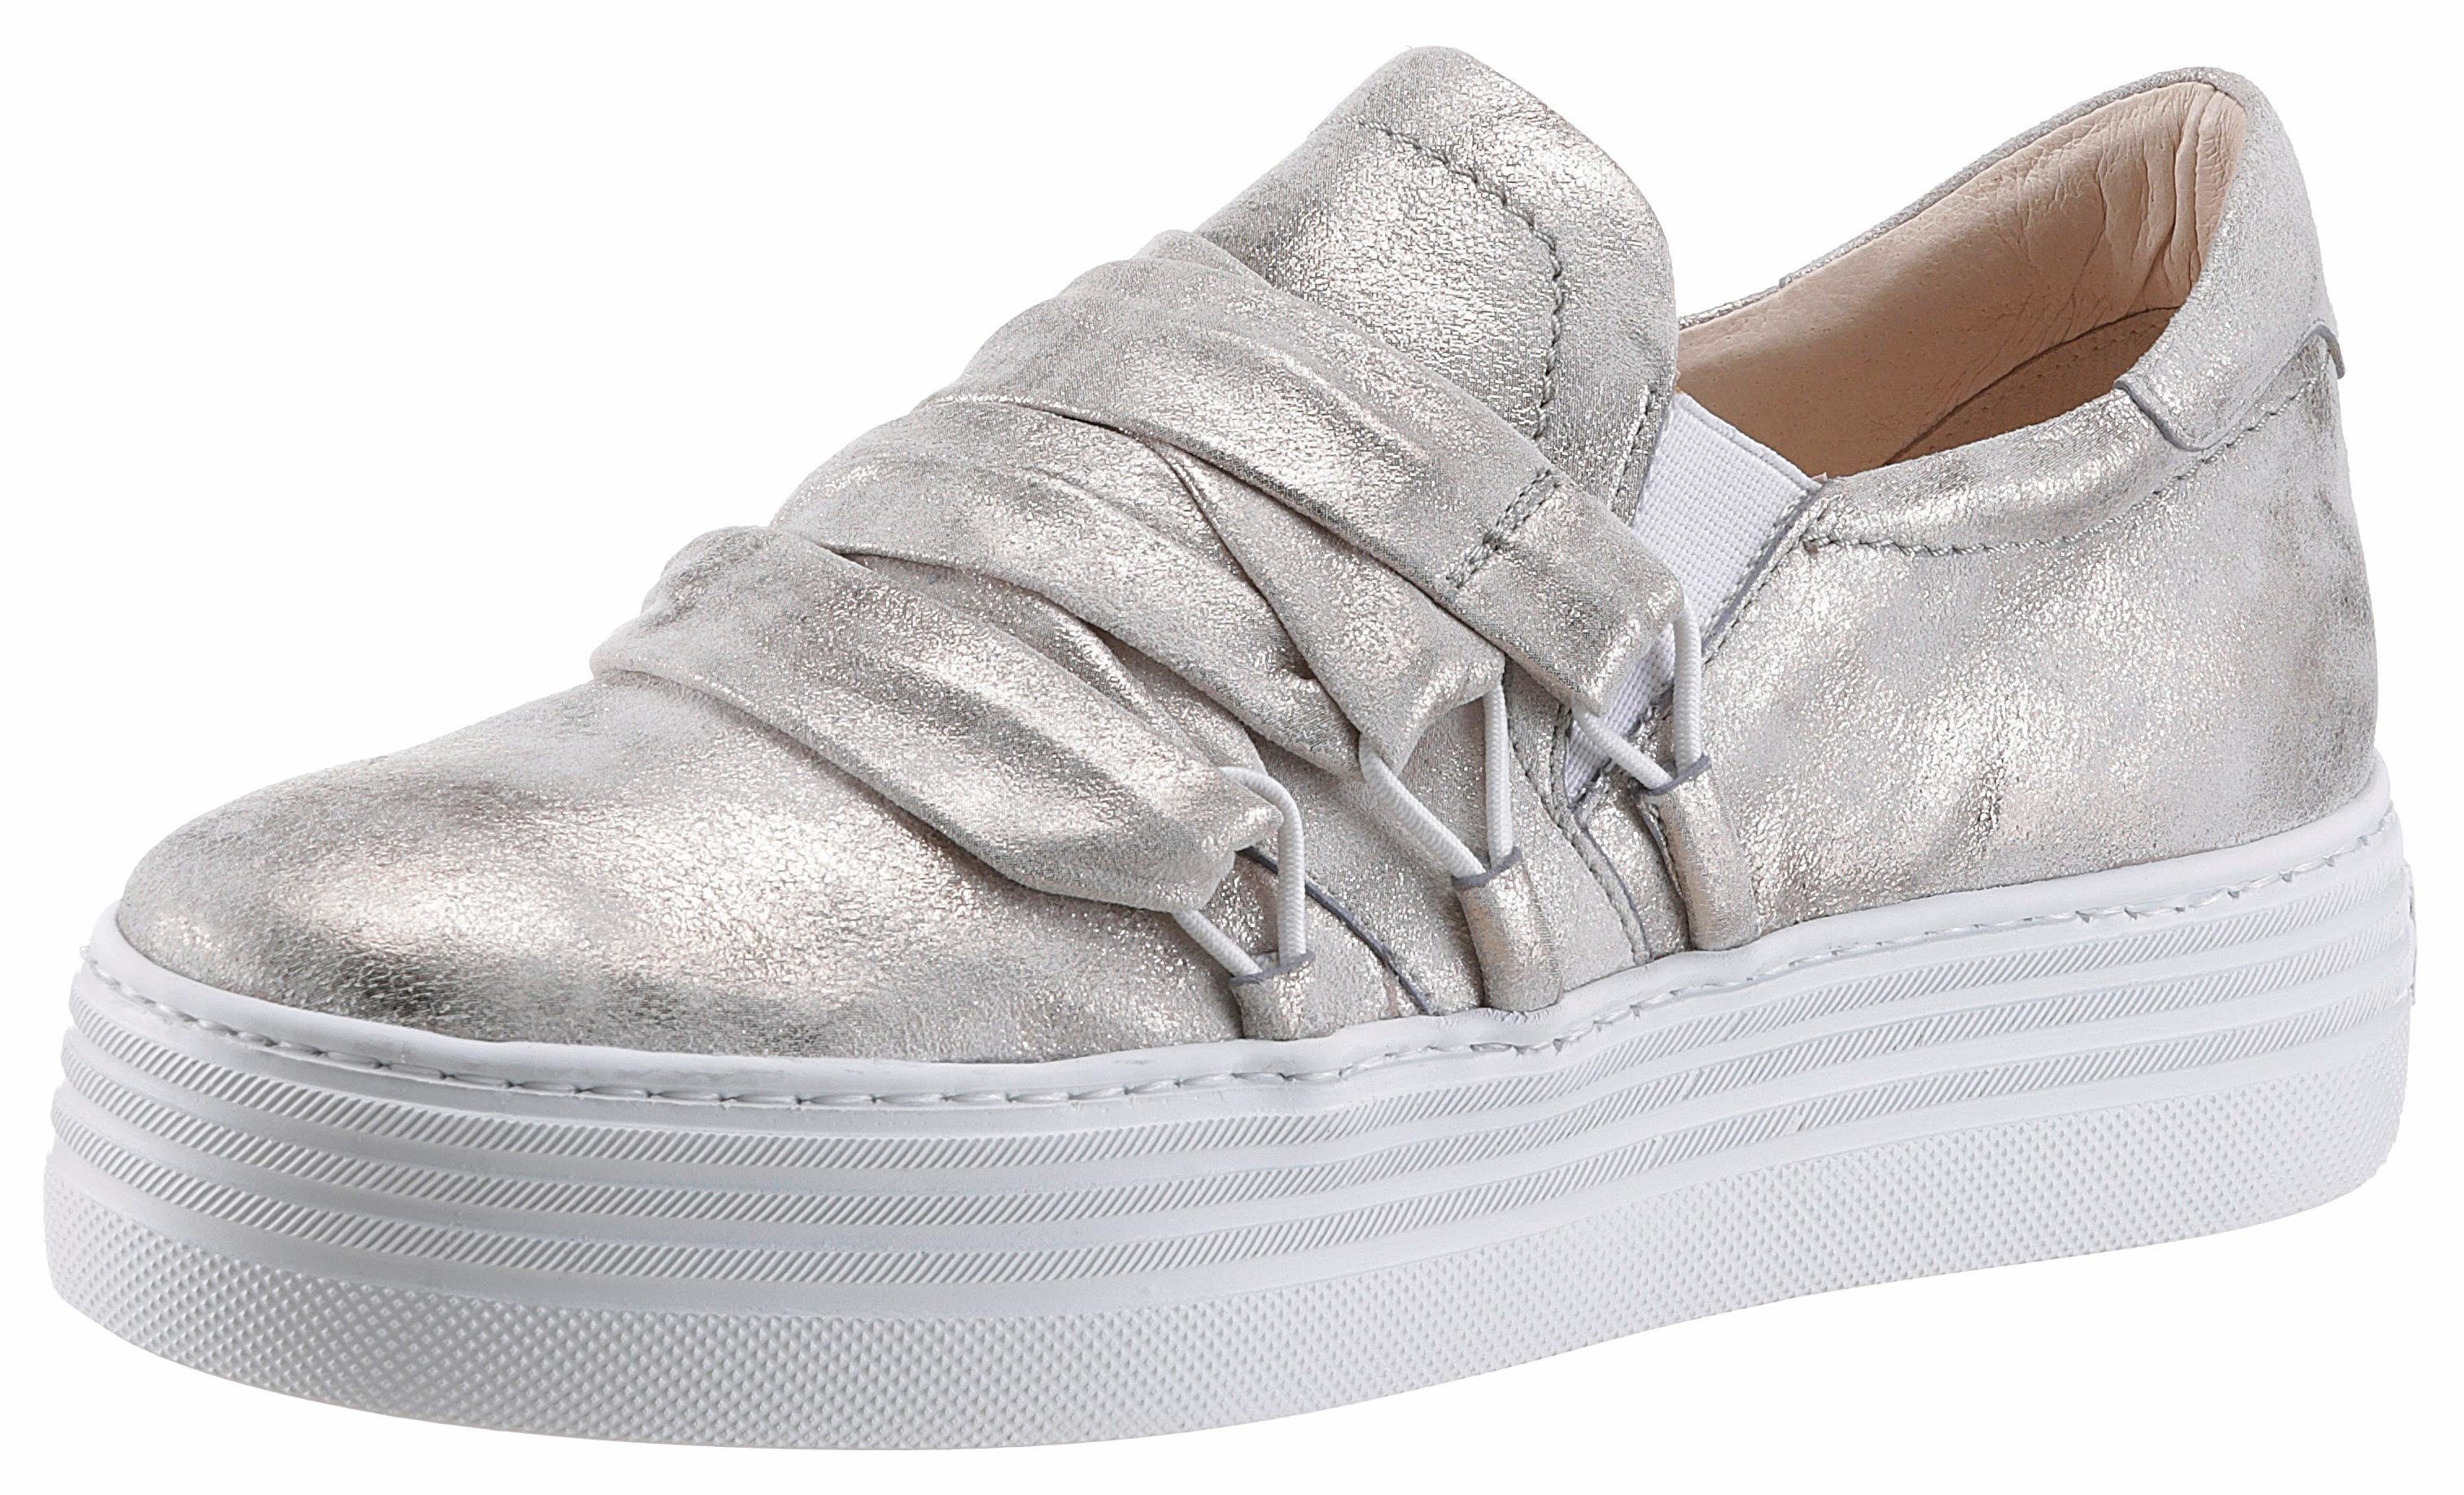 Arizona Plateausneaker, im Metallic-Look, silber, 38 38